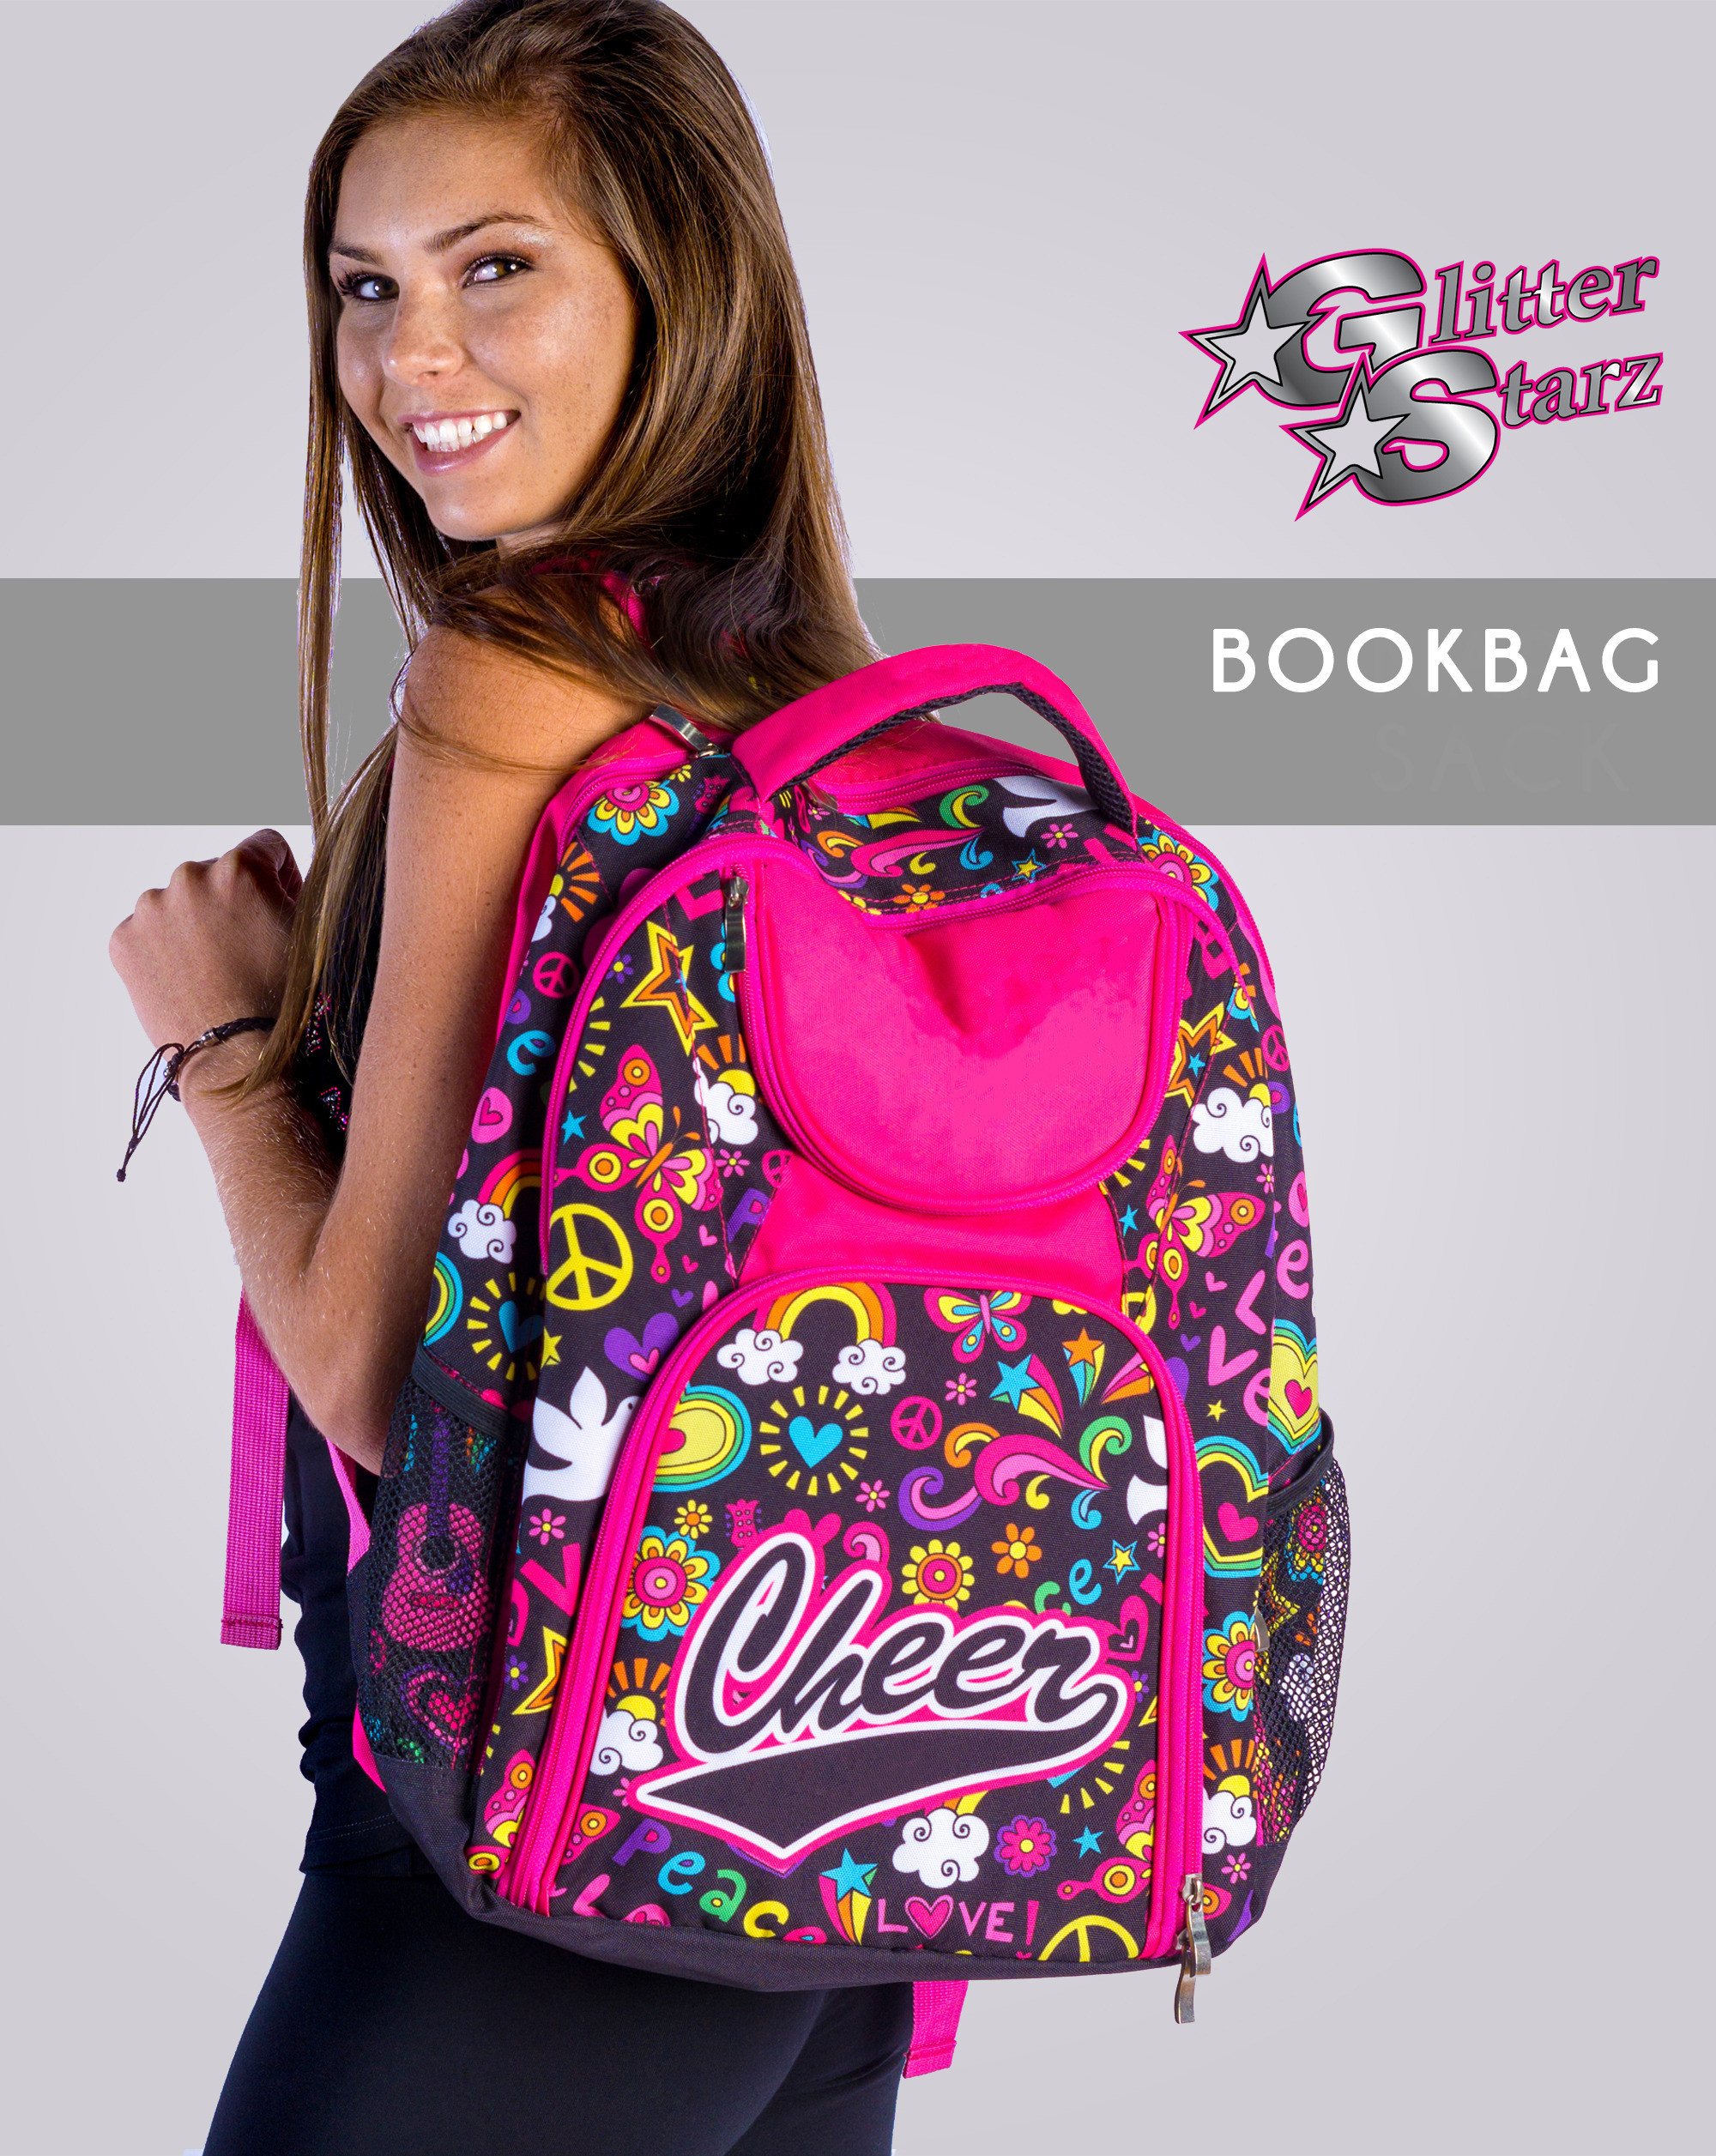 glitterstarz bookbag dyesub custom pattern teamwear travel bag